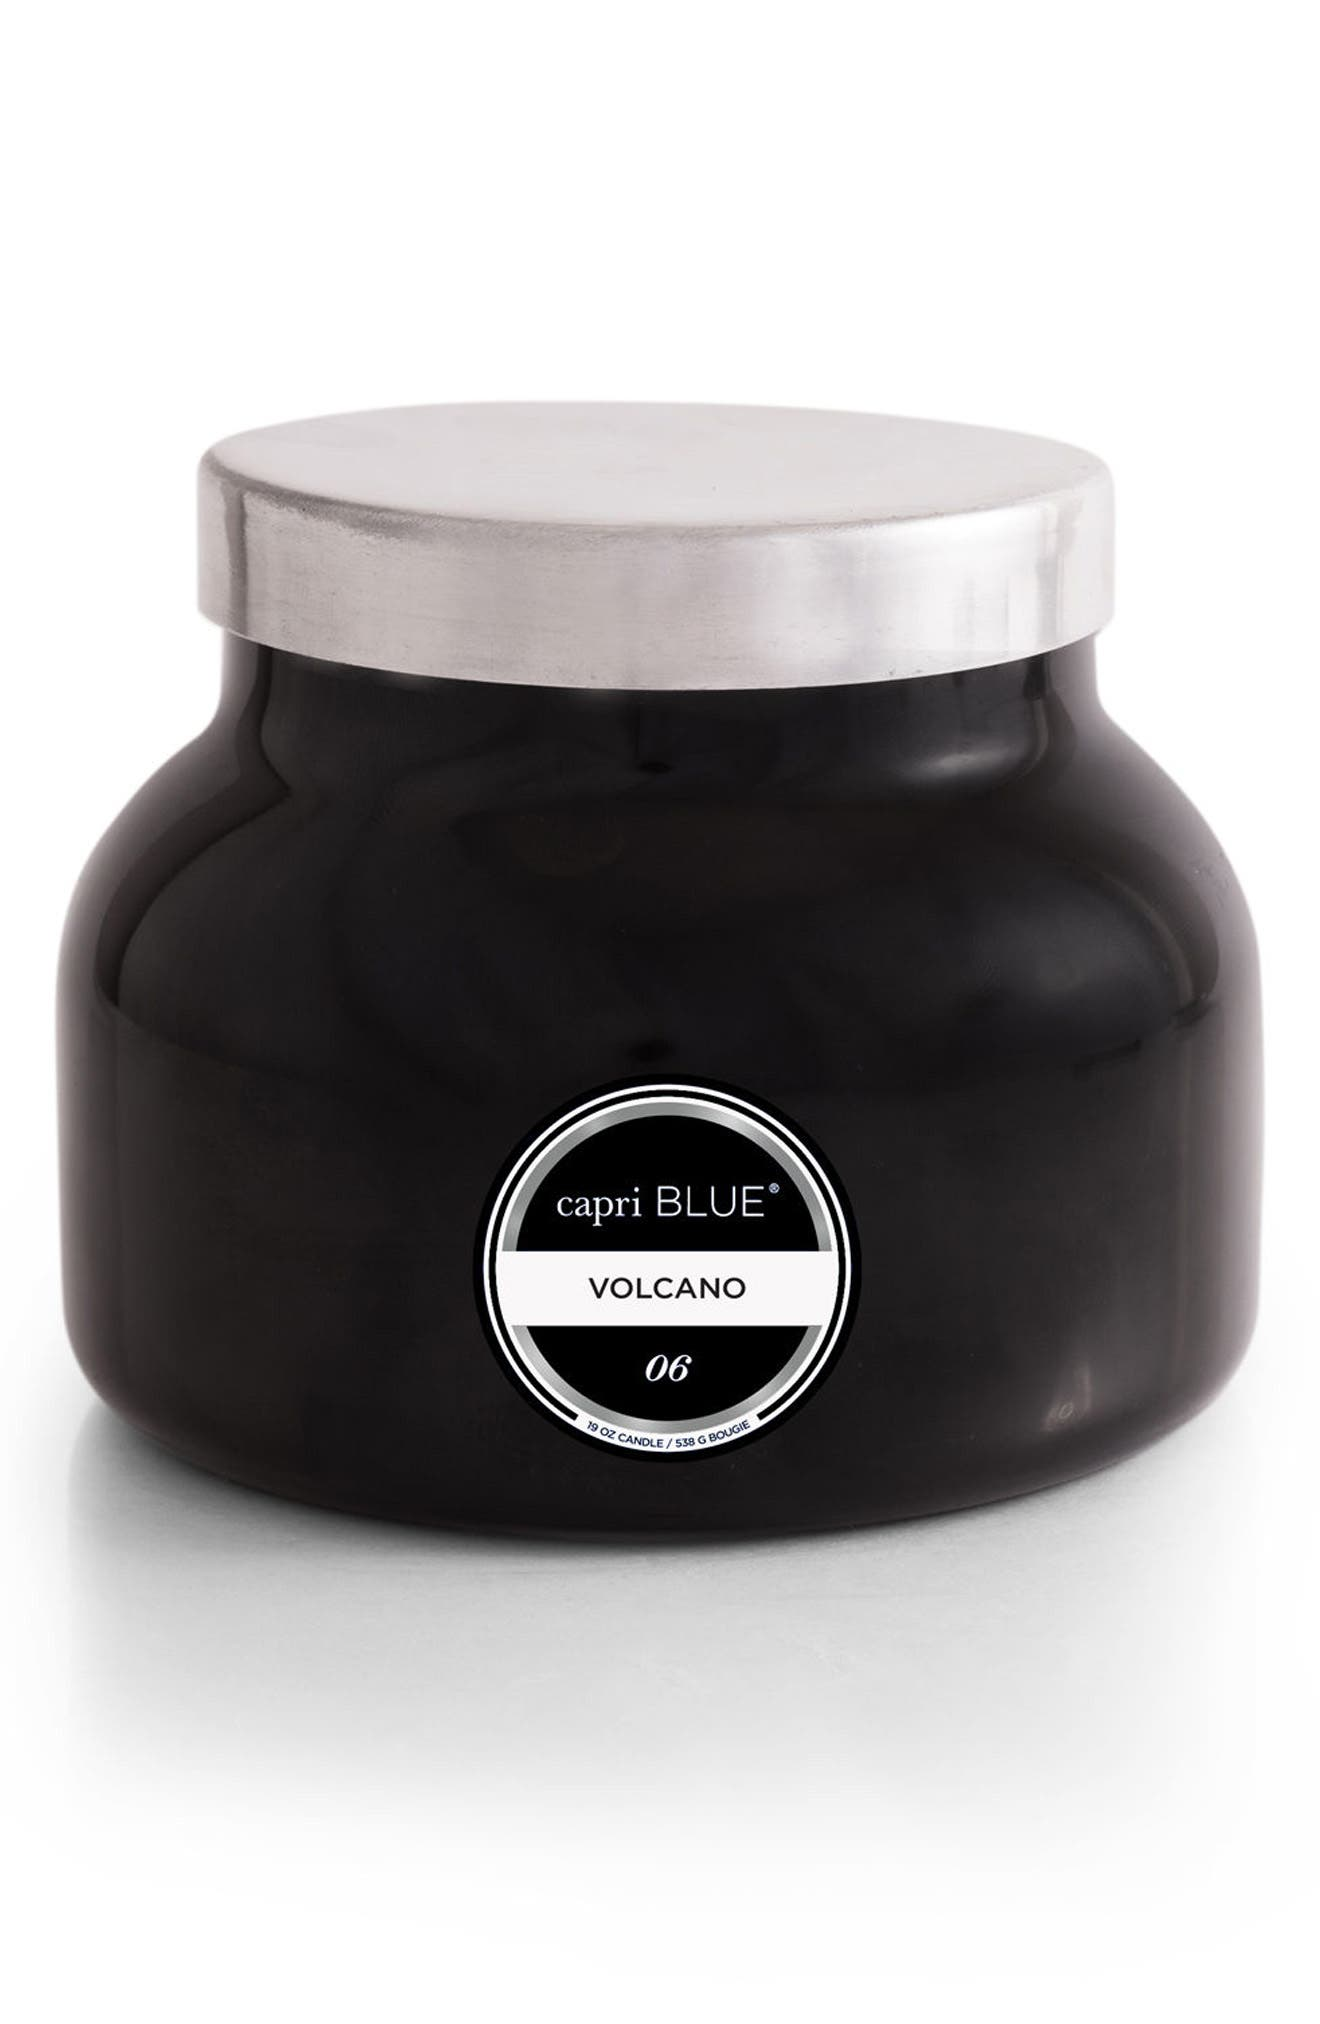 Signature Volcano Scented Jar Candle,                             Main thumbnail 1, color,                             001